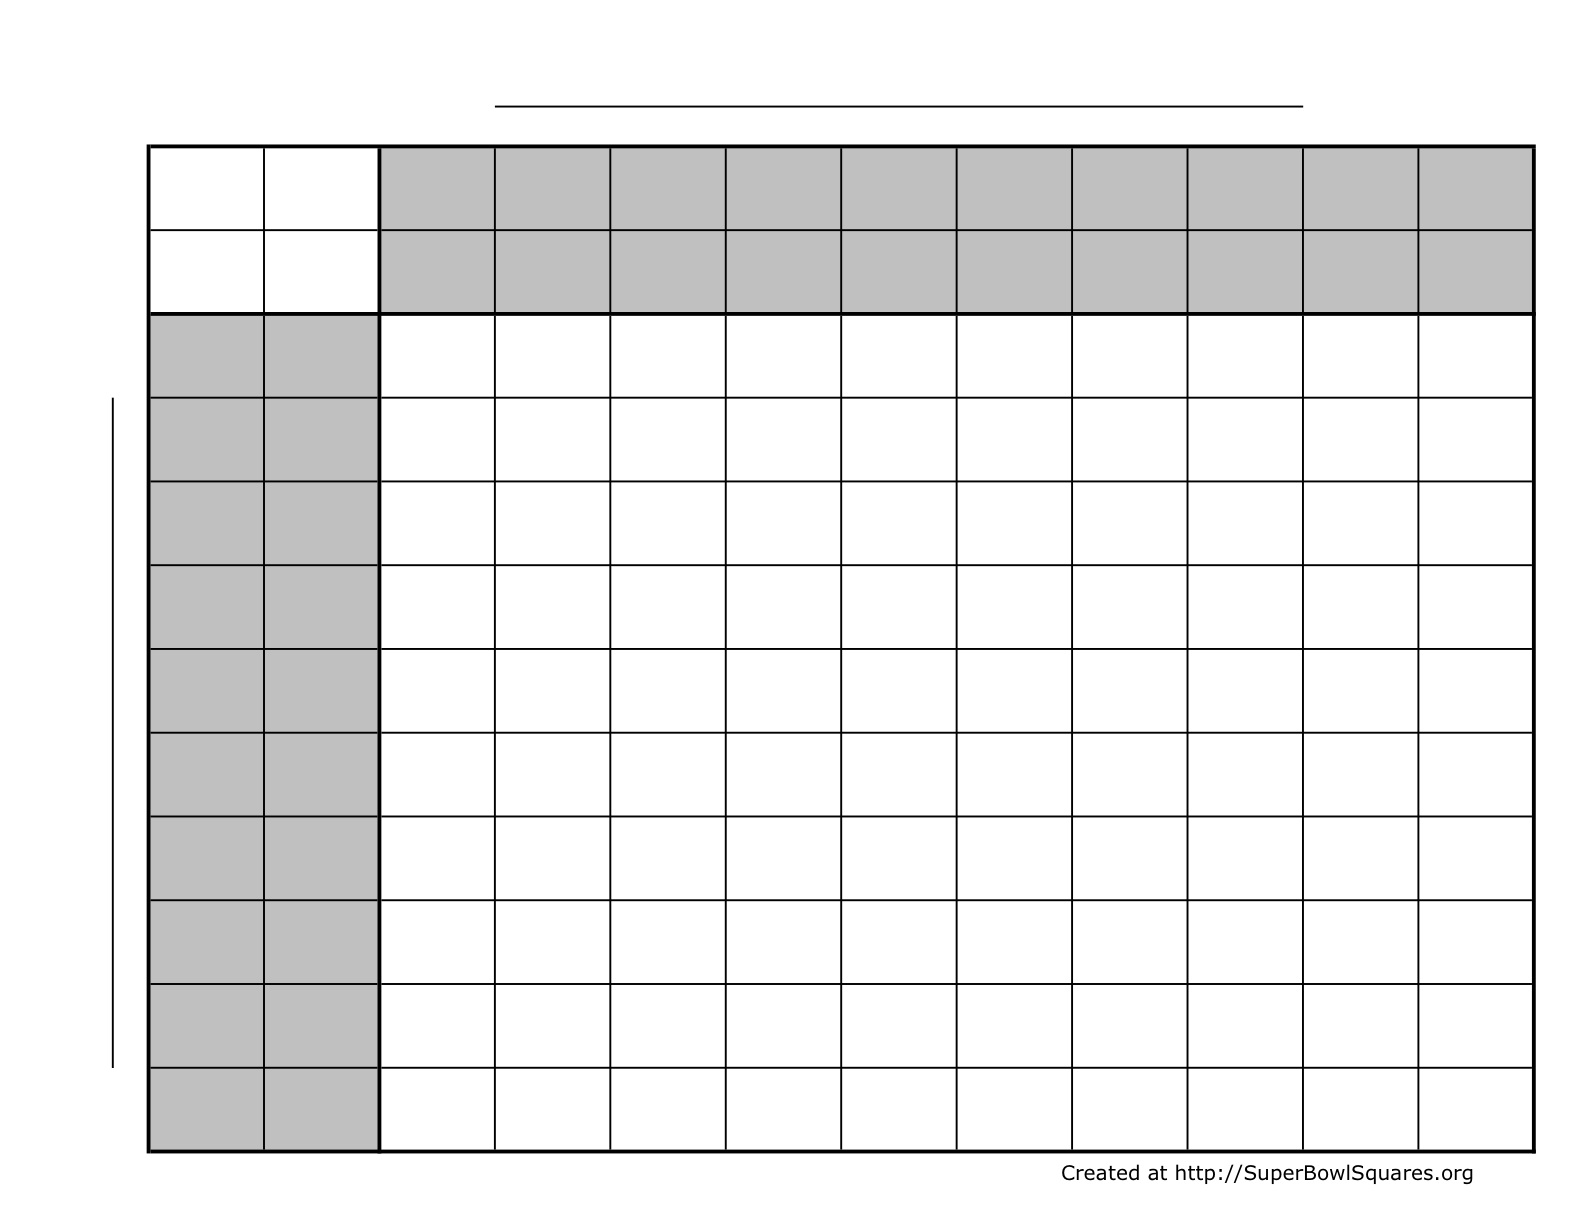 picture about Printable Football Squares Sheet called Printable Soccer Squares Sheets